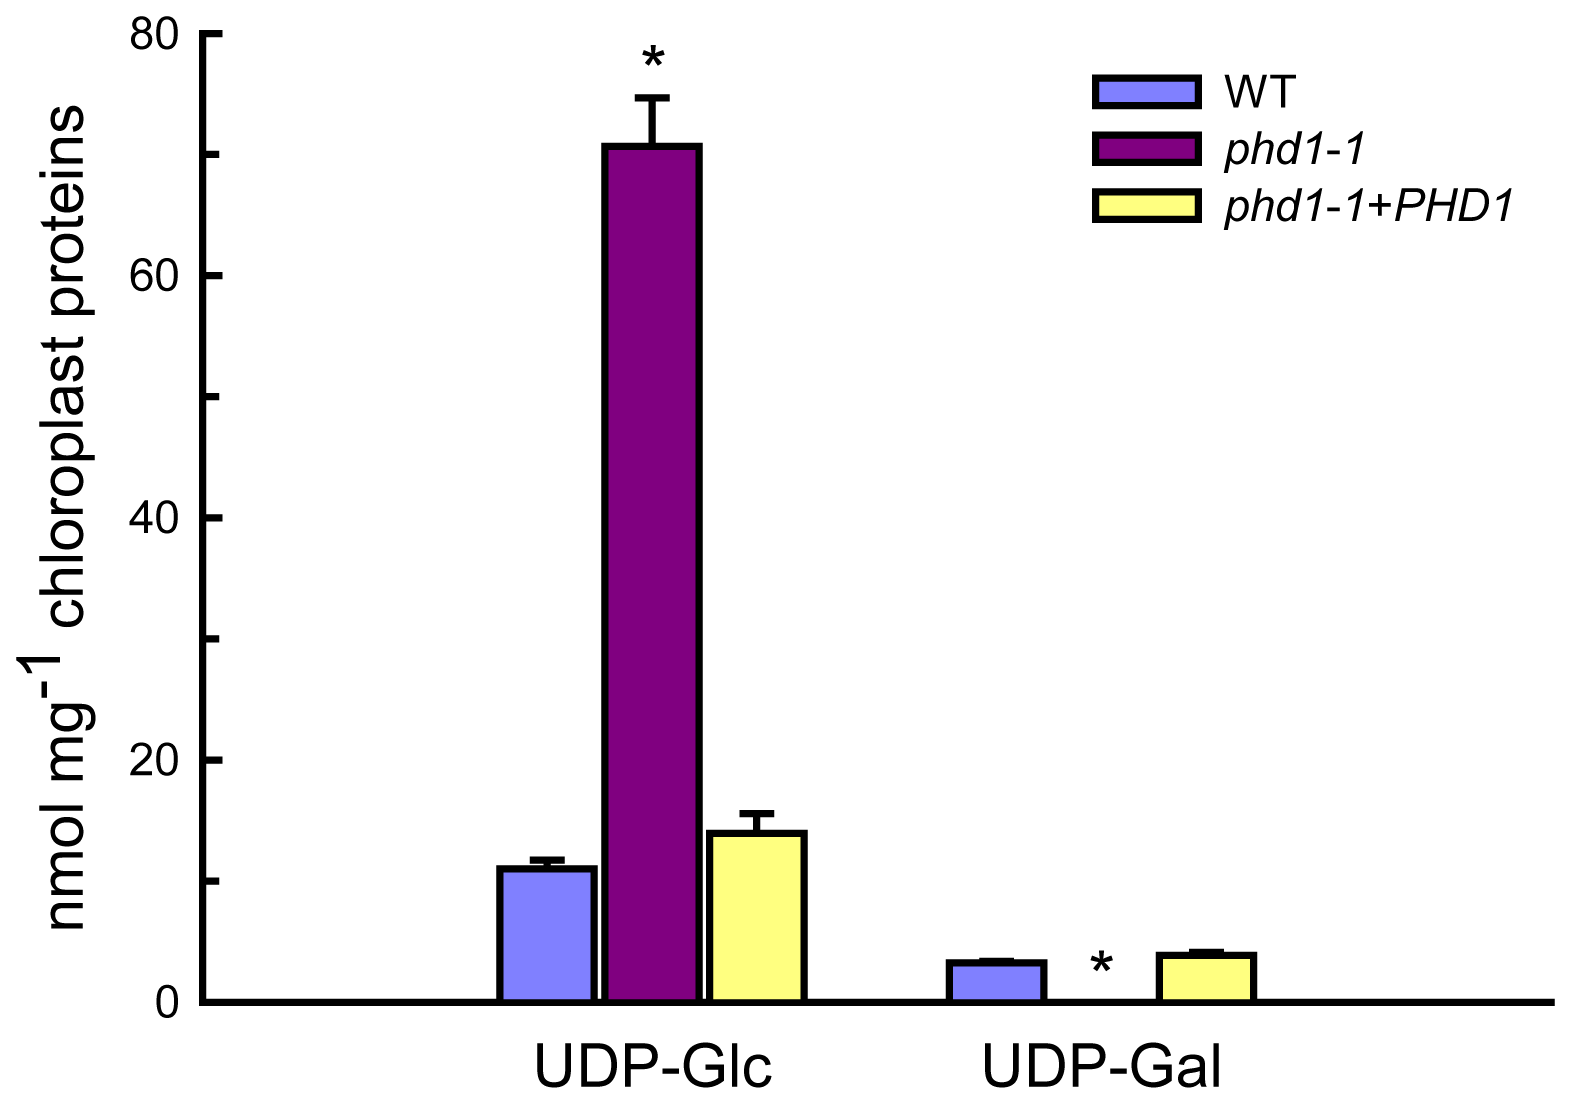 UDP-Glc and UDP-Gal levels in isolated chloroplasts from wild type, <i>phd1</i>-<i>1</i>, and <i>PHD1</i>-complemented transgenic lines.